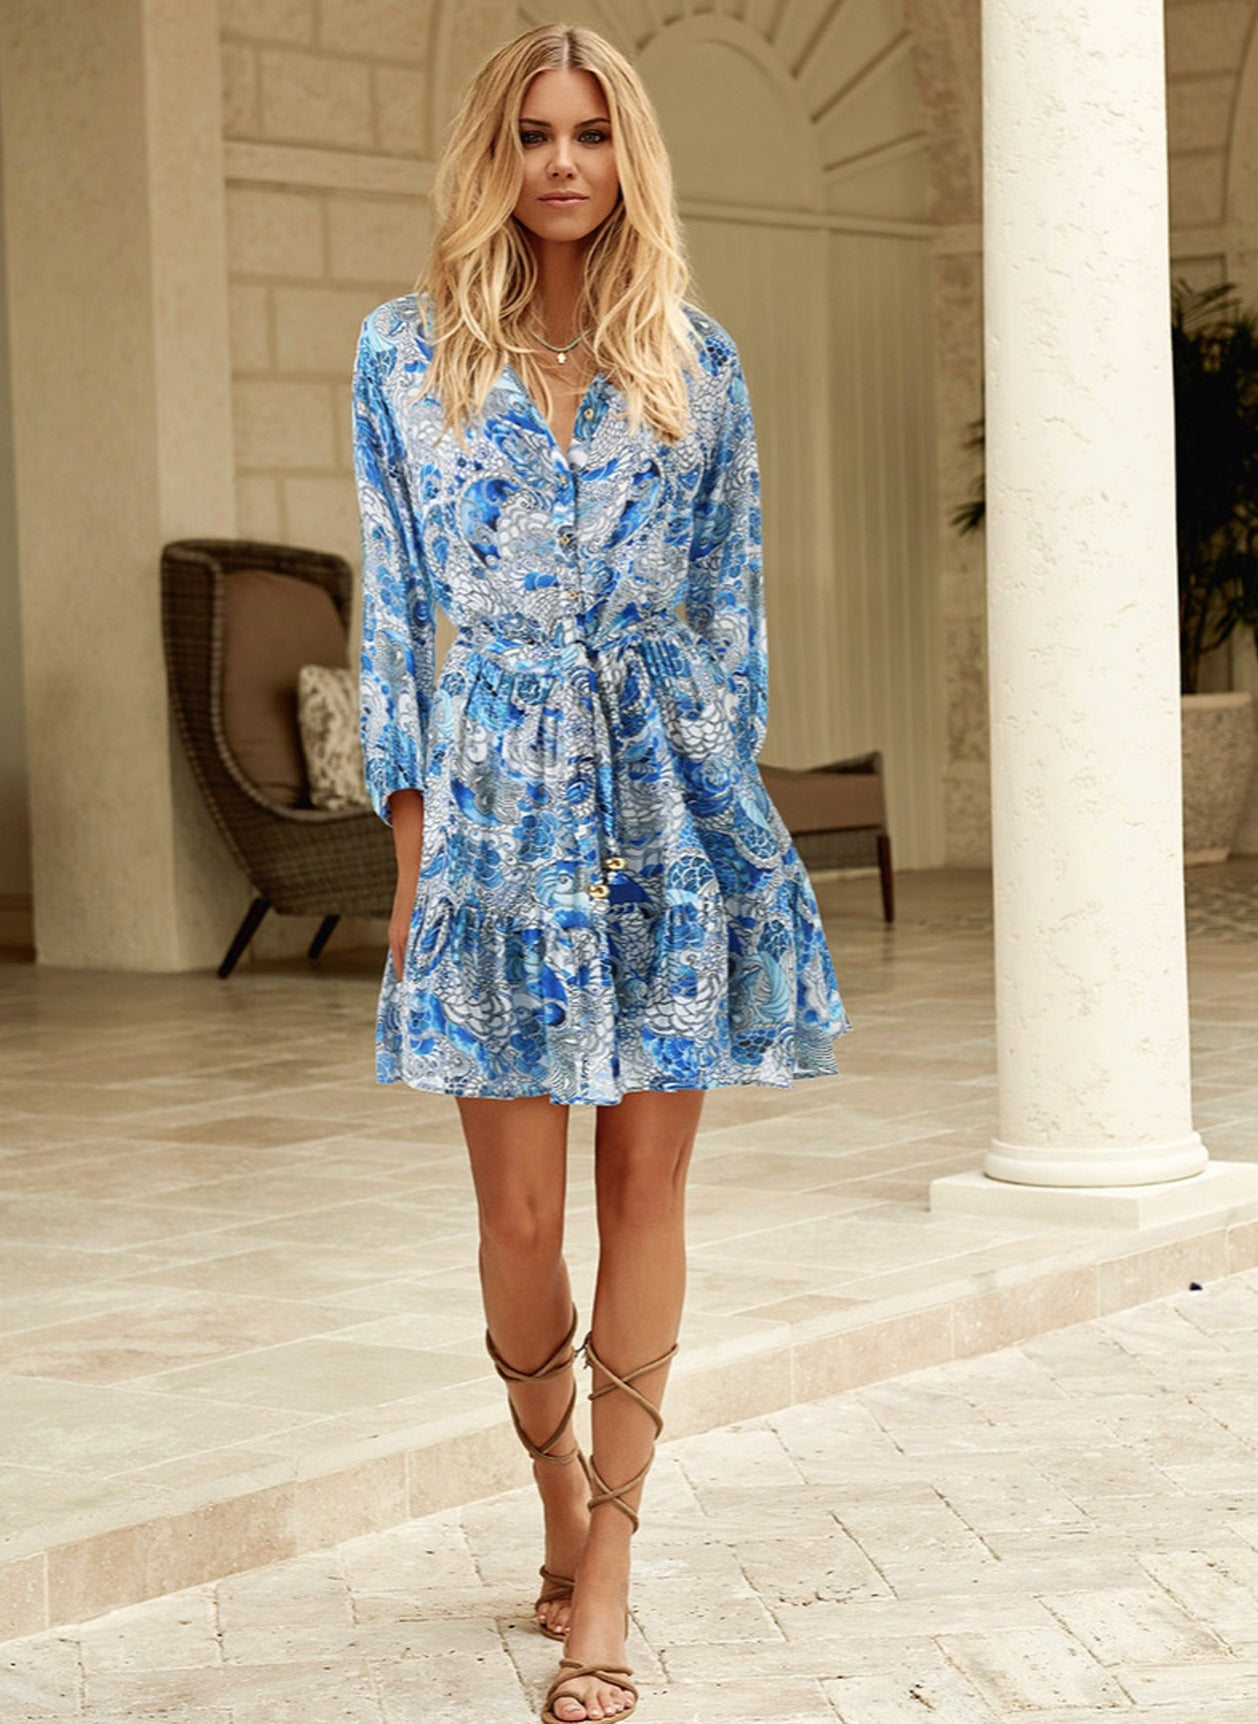 Bluebird Fantasy Dress